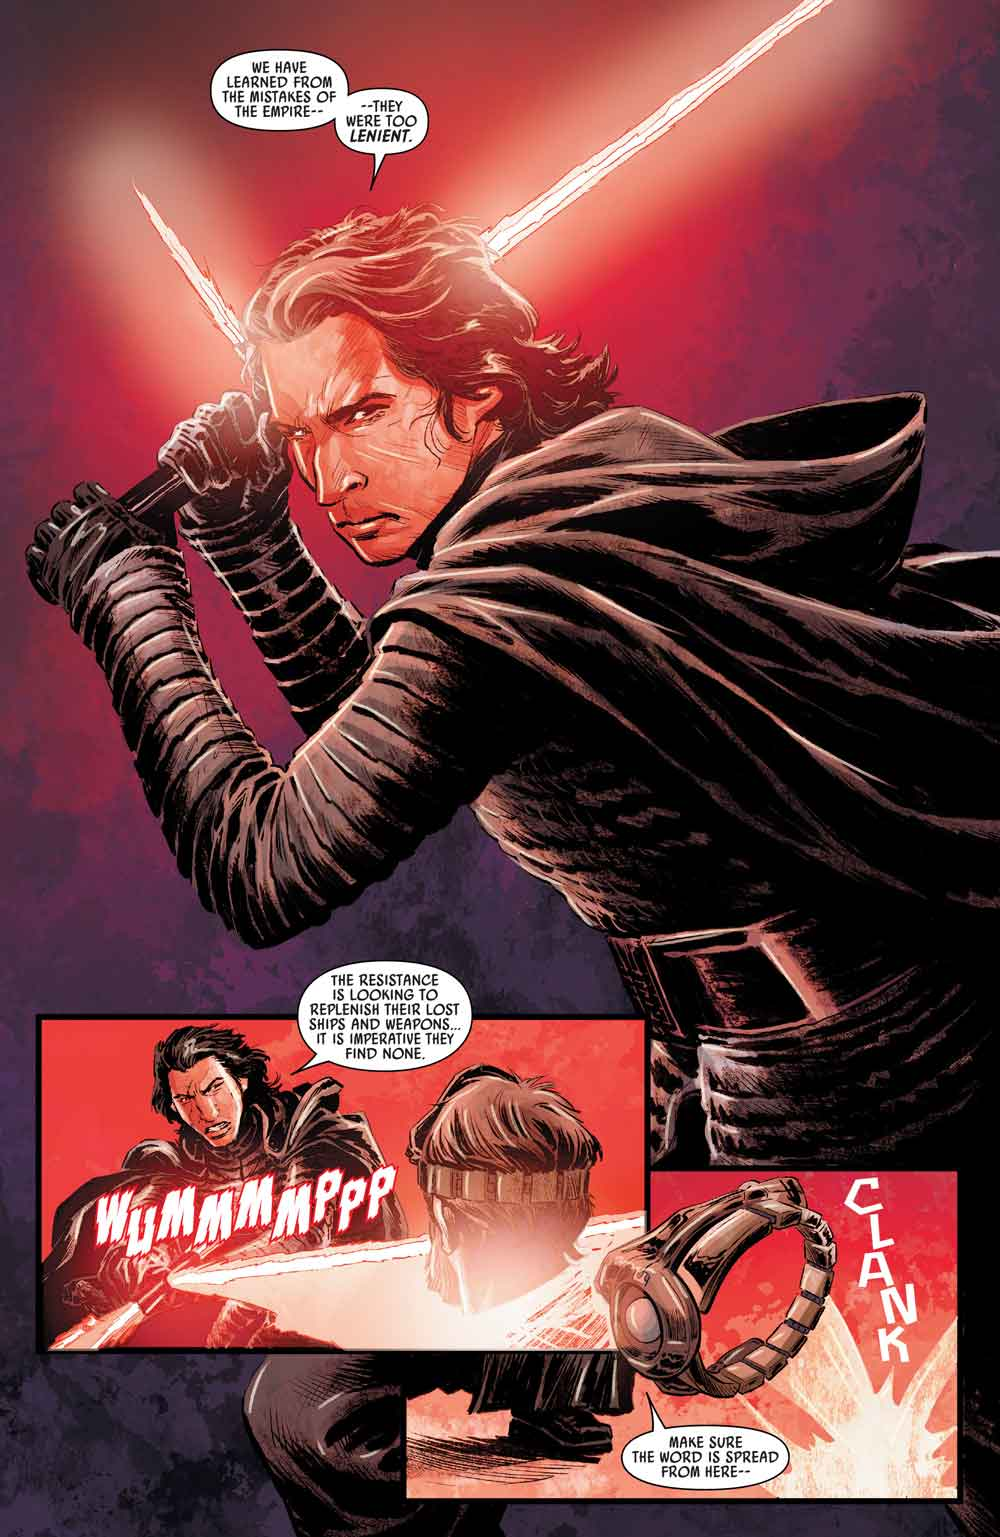 Star Wars confirma que Kylo Ren finalmente ha superado a Darth Vader